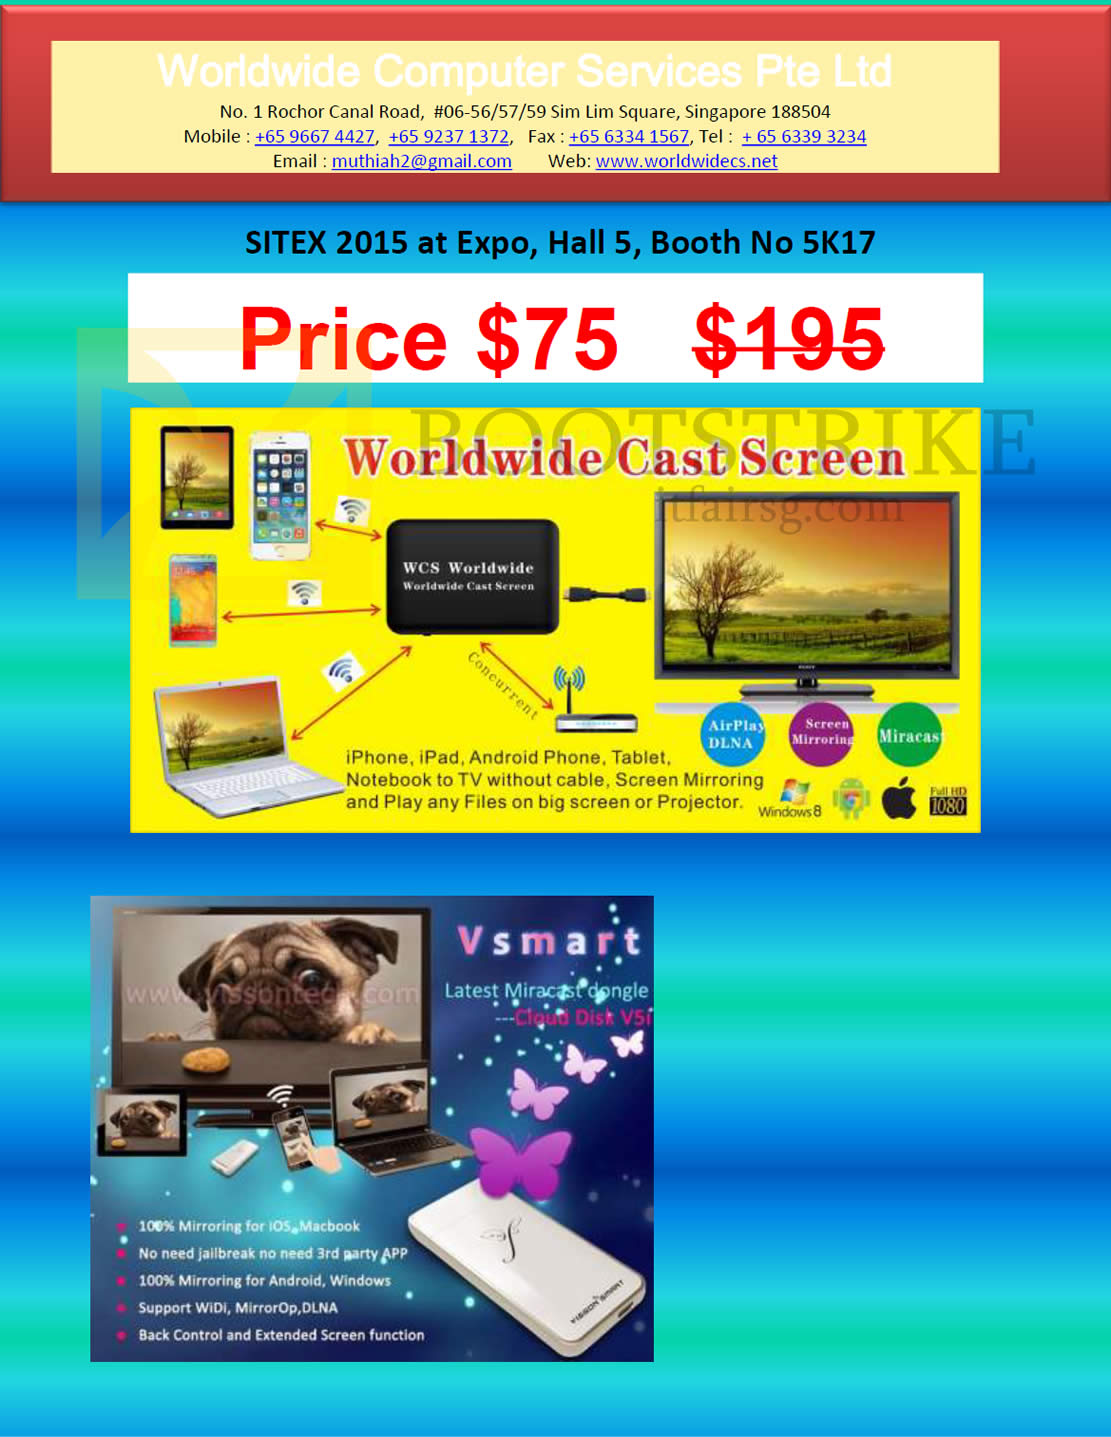 SITEX 2015 price list image brochure of Worldwide Computer Services Cast Screen Vsmart Dongle